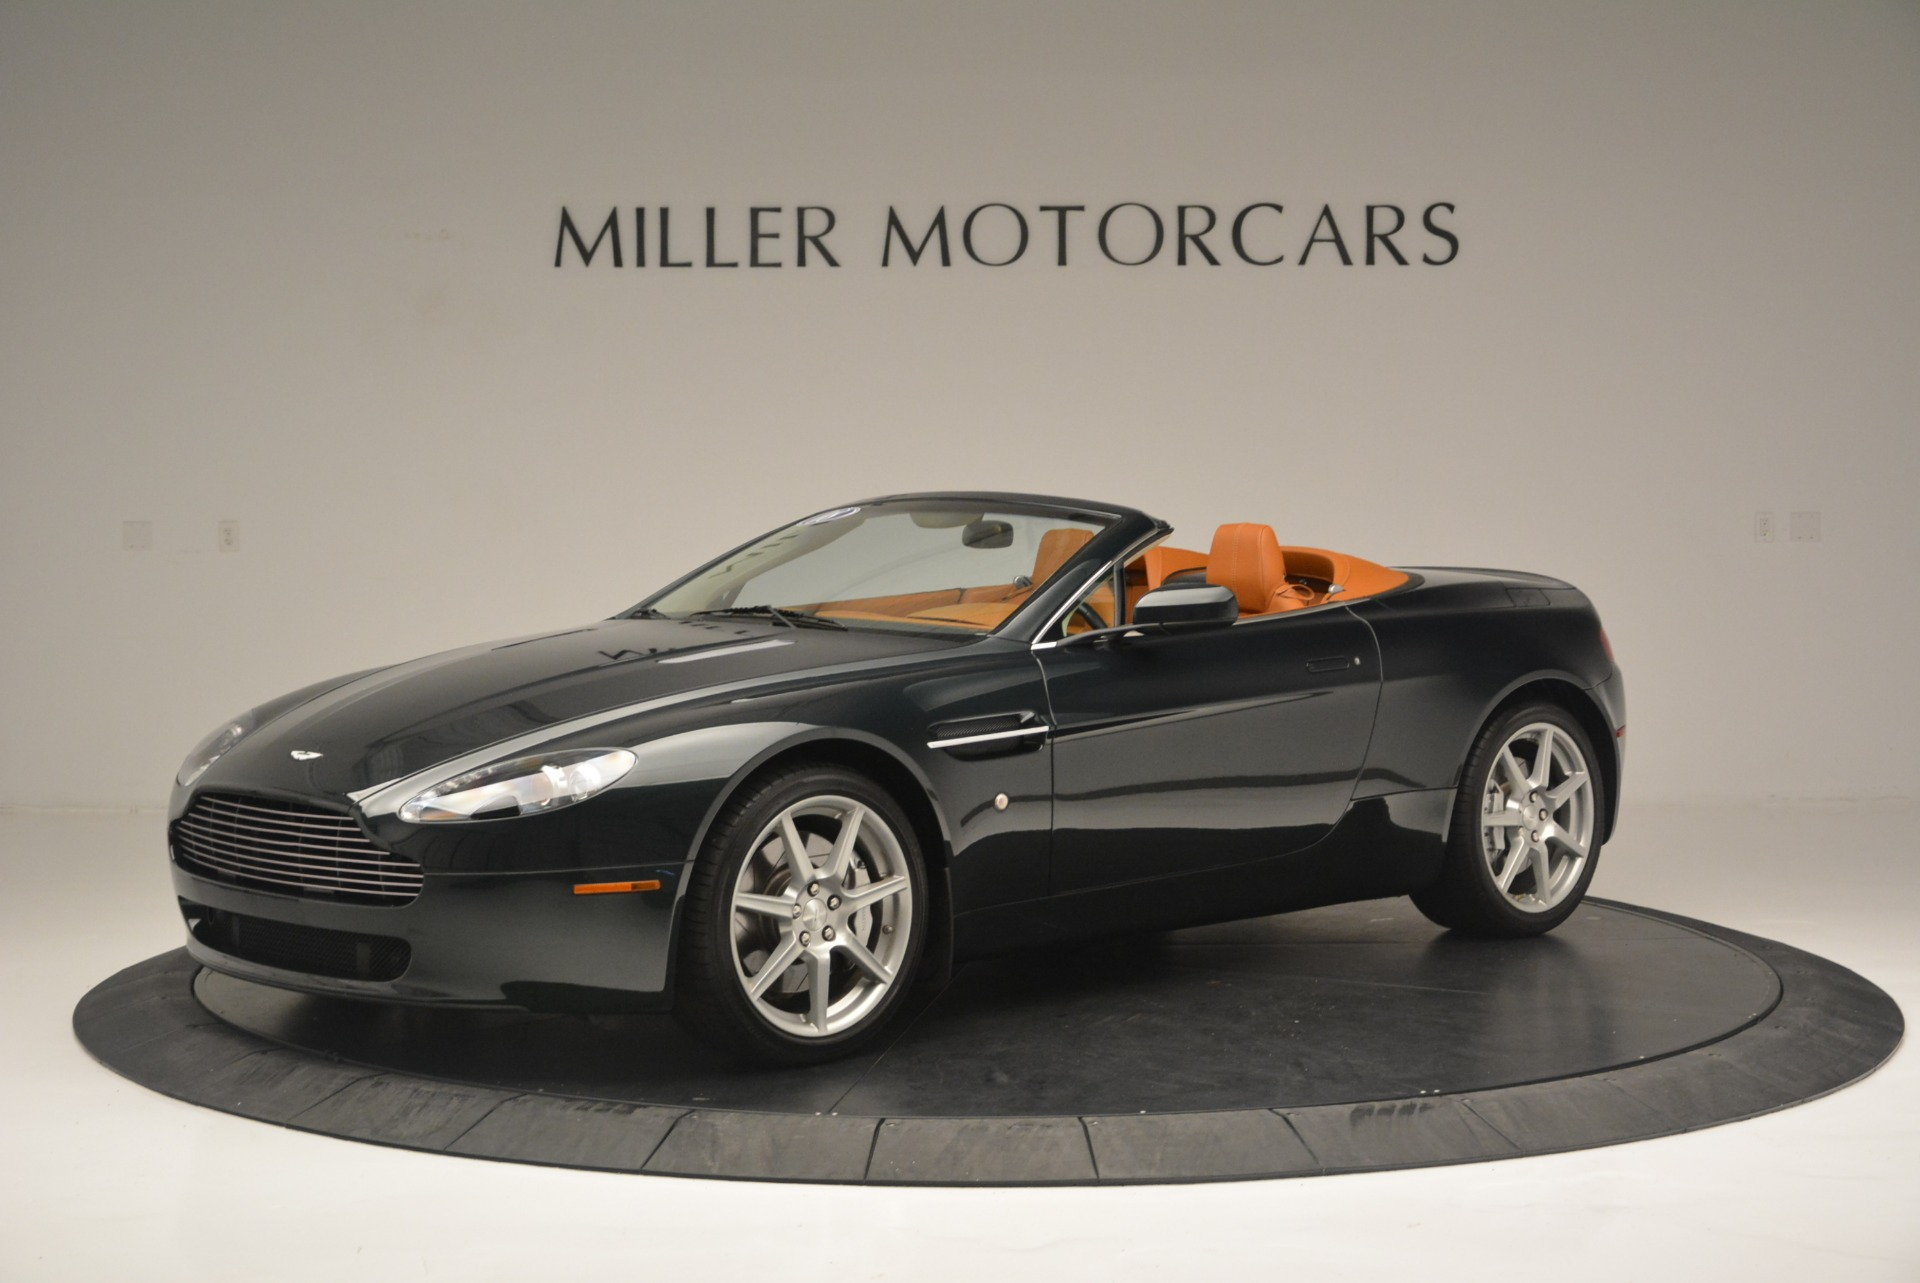 Pre Owned 2008 Aston Martin V8 Vantage Roadster For Sale Miller Motorcars Stock 7403